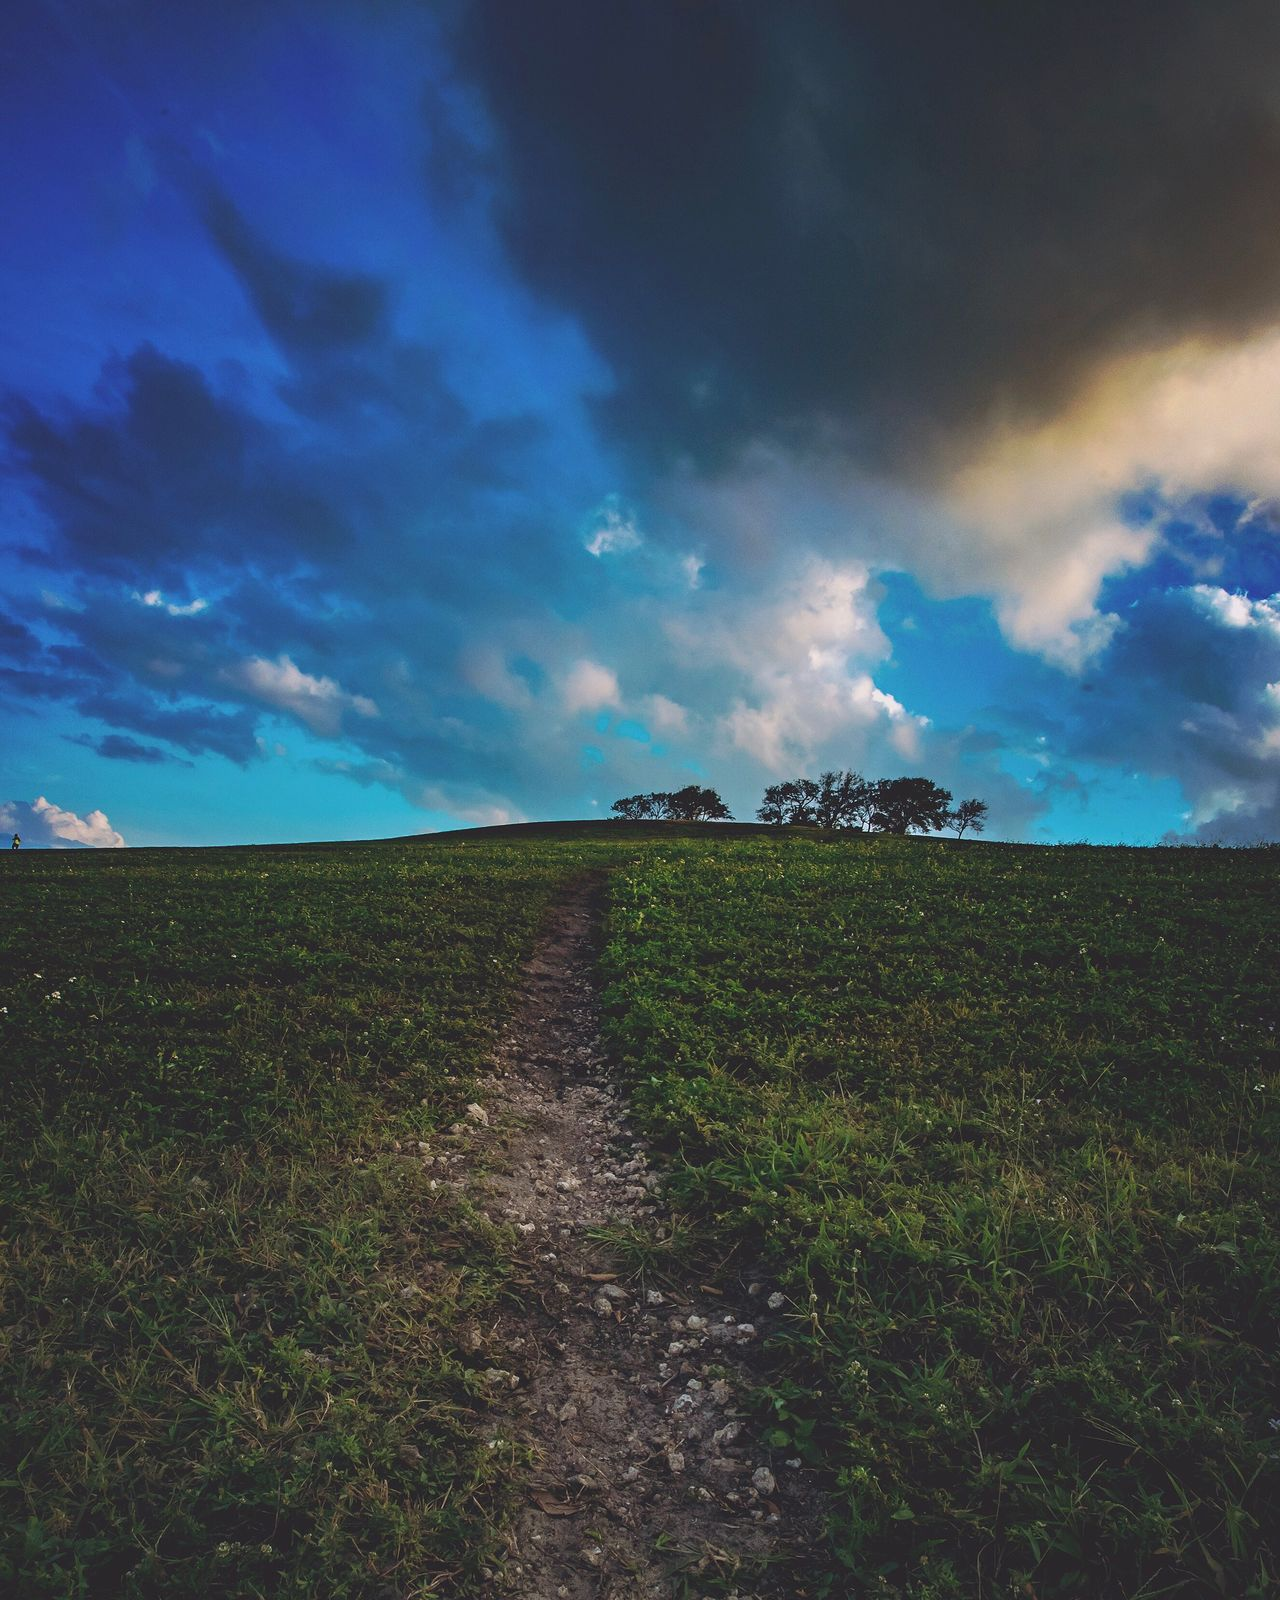 Sky Scenics Nature Field Cloud - Sky Beauty In Nature Landscape Rural Scene Outdoors Tranquility Agriculture Tranquil Scene No People Green Color Growth Day